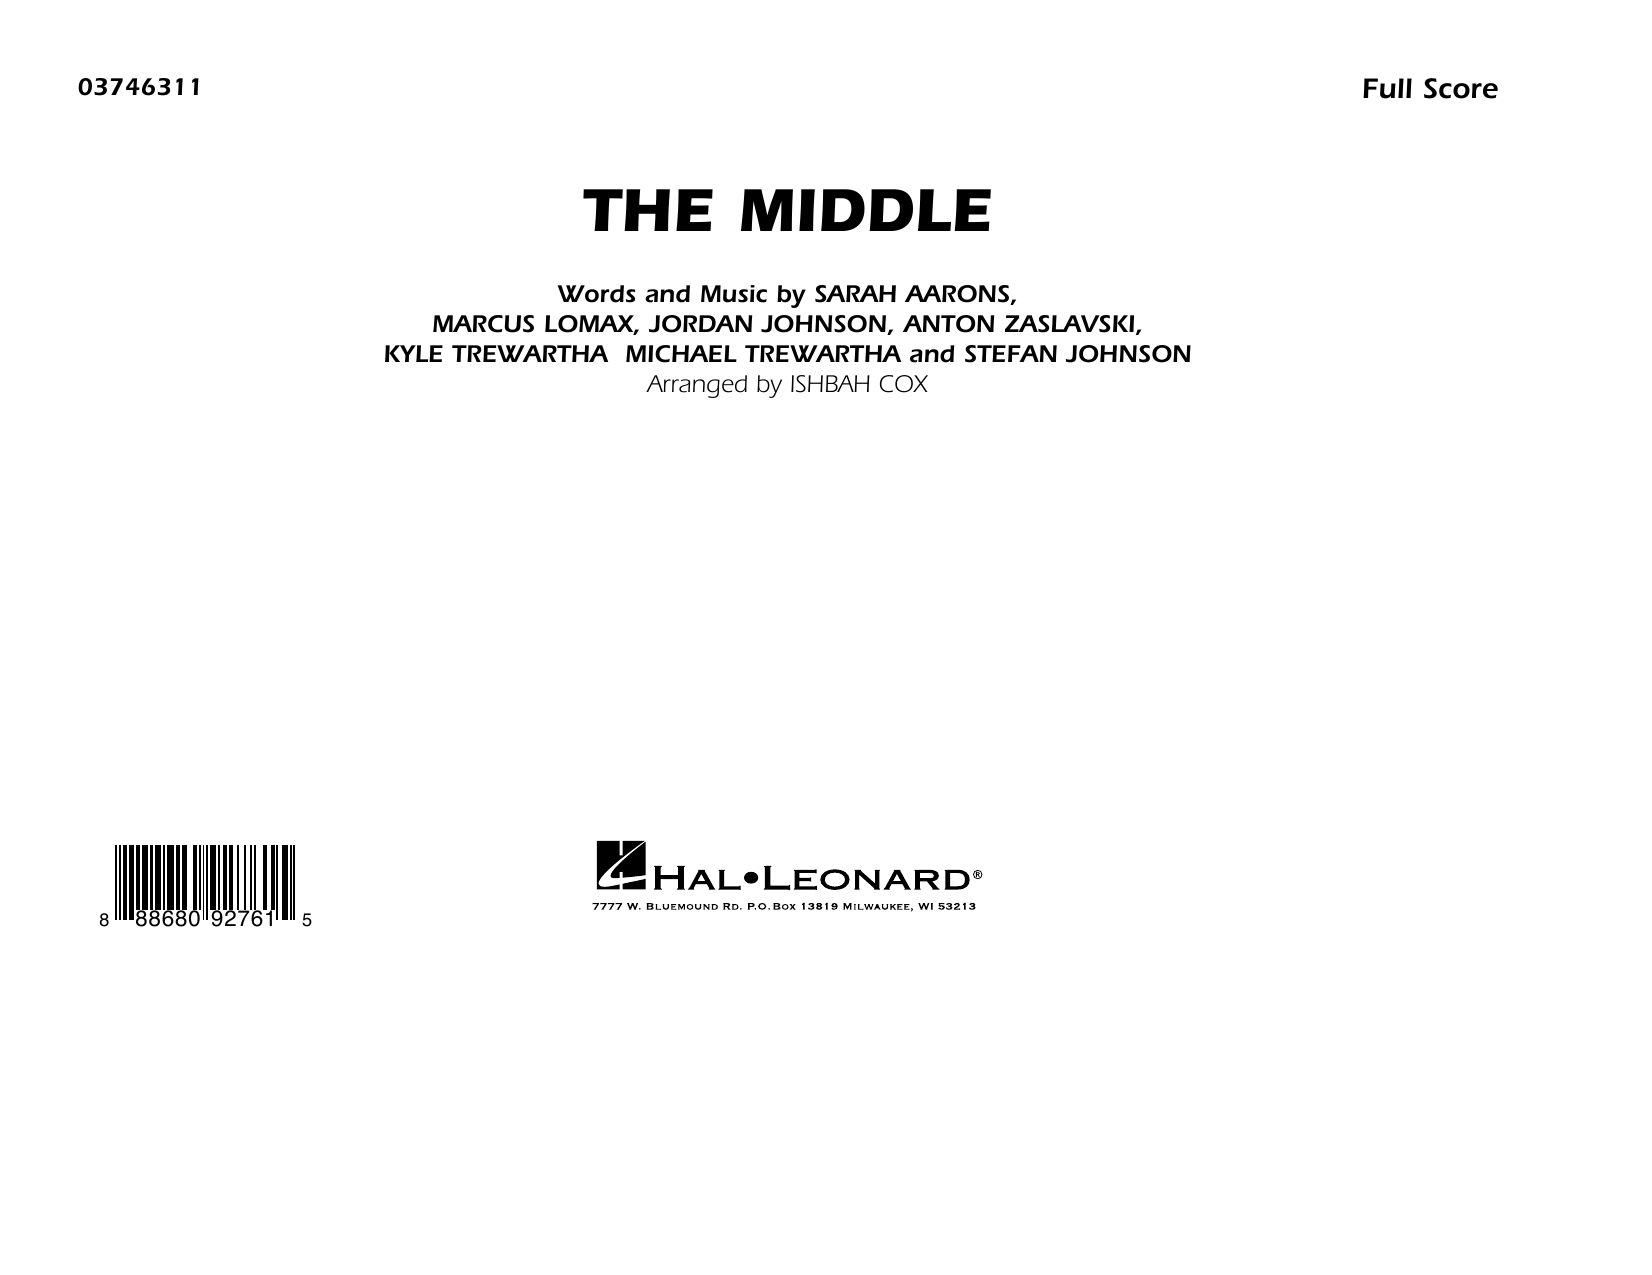 The Middle (arr. Ishbah Cox) - Conductor Score (Full Score) (Marching Band)